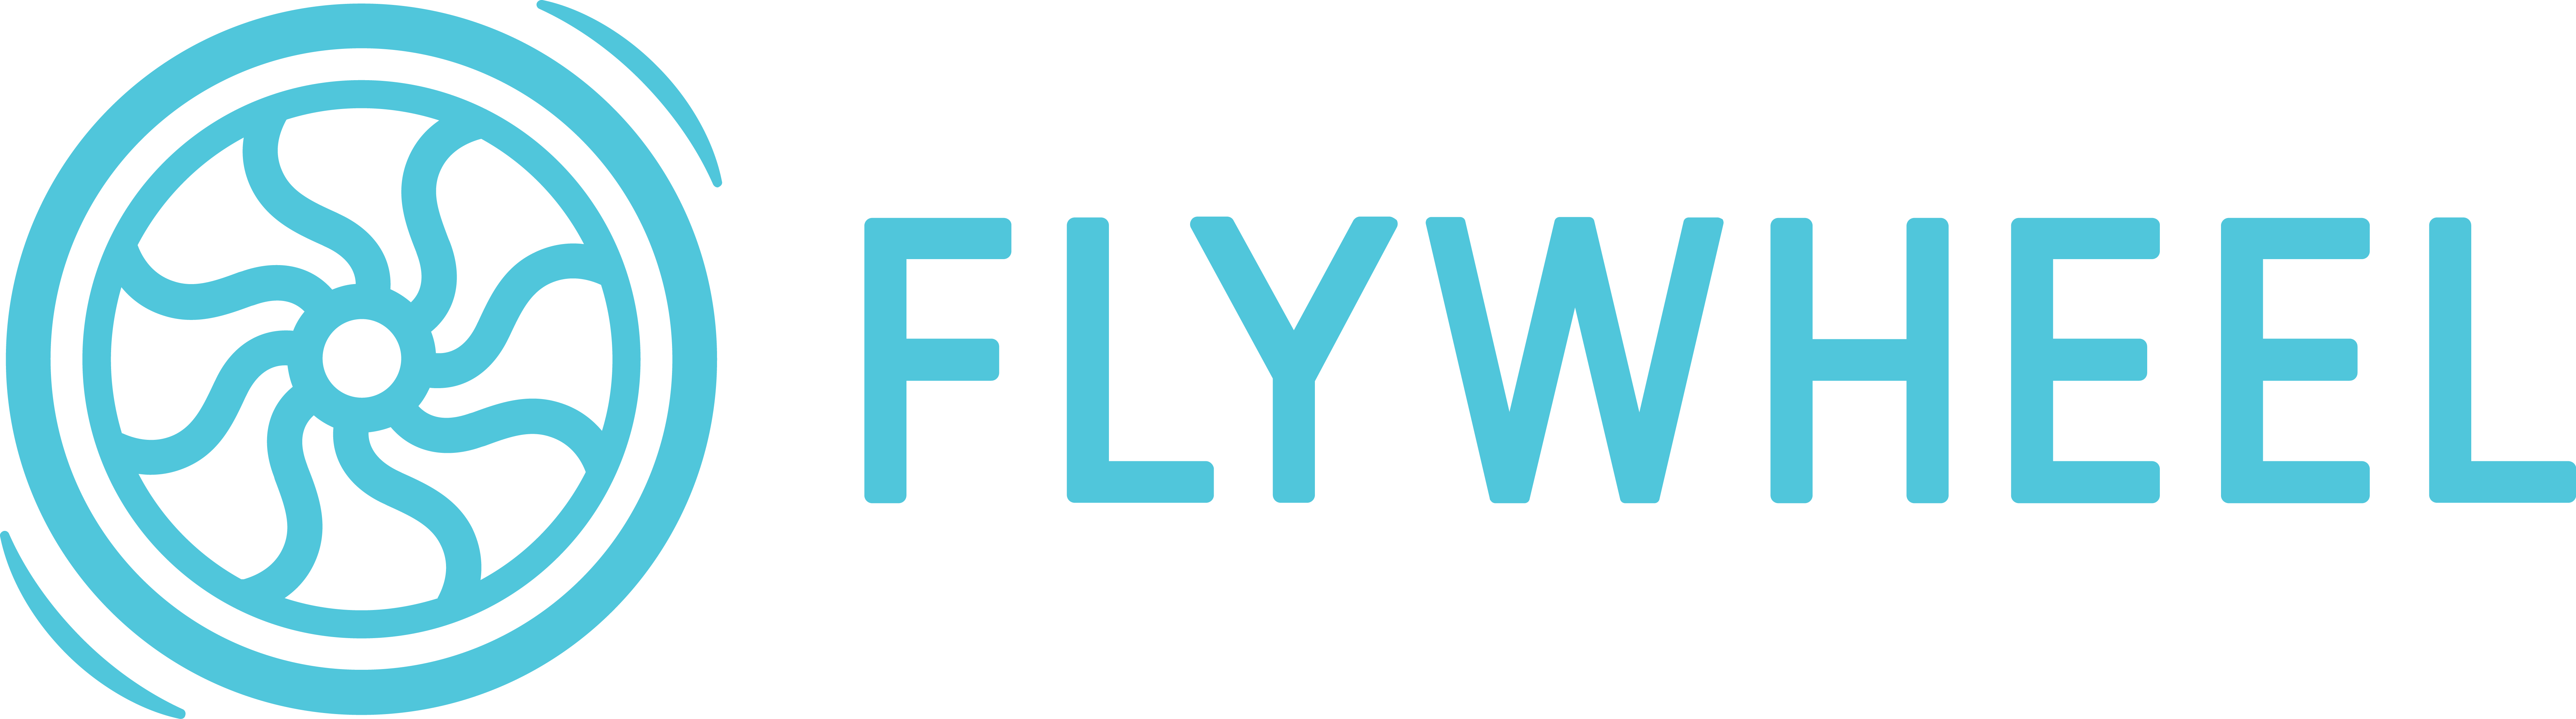 Flywheel Support Help Center home page